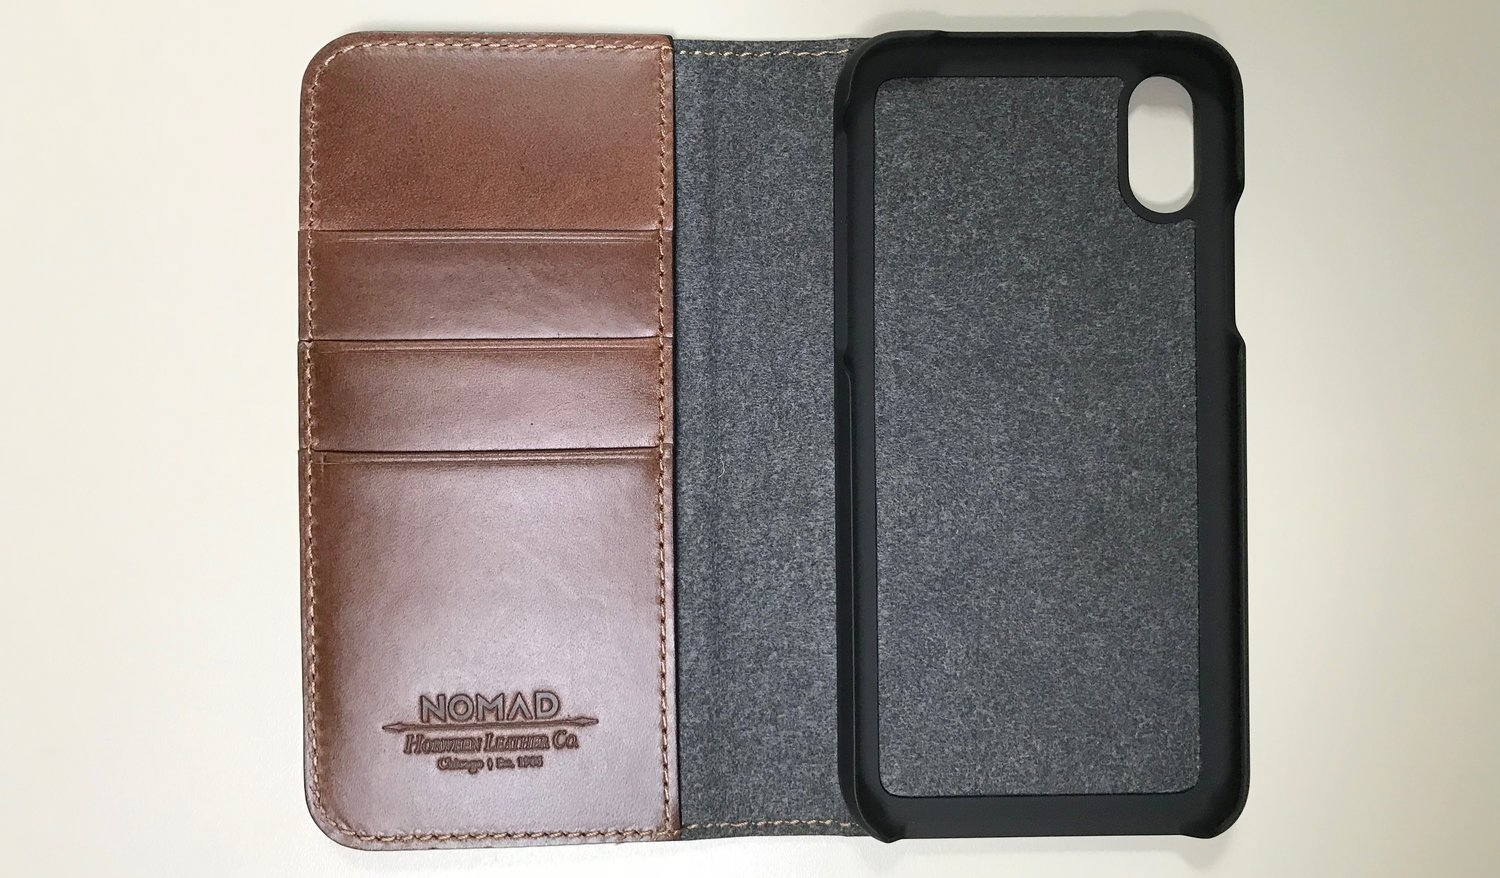 brand new 5dc39 c4b94 Getting an iPhone X? These Nomad cases are amazing and available now ...